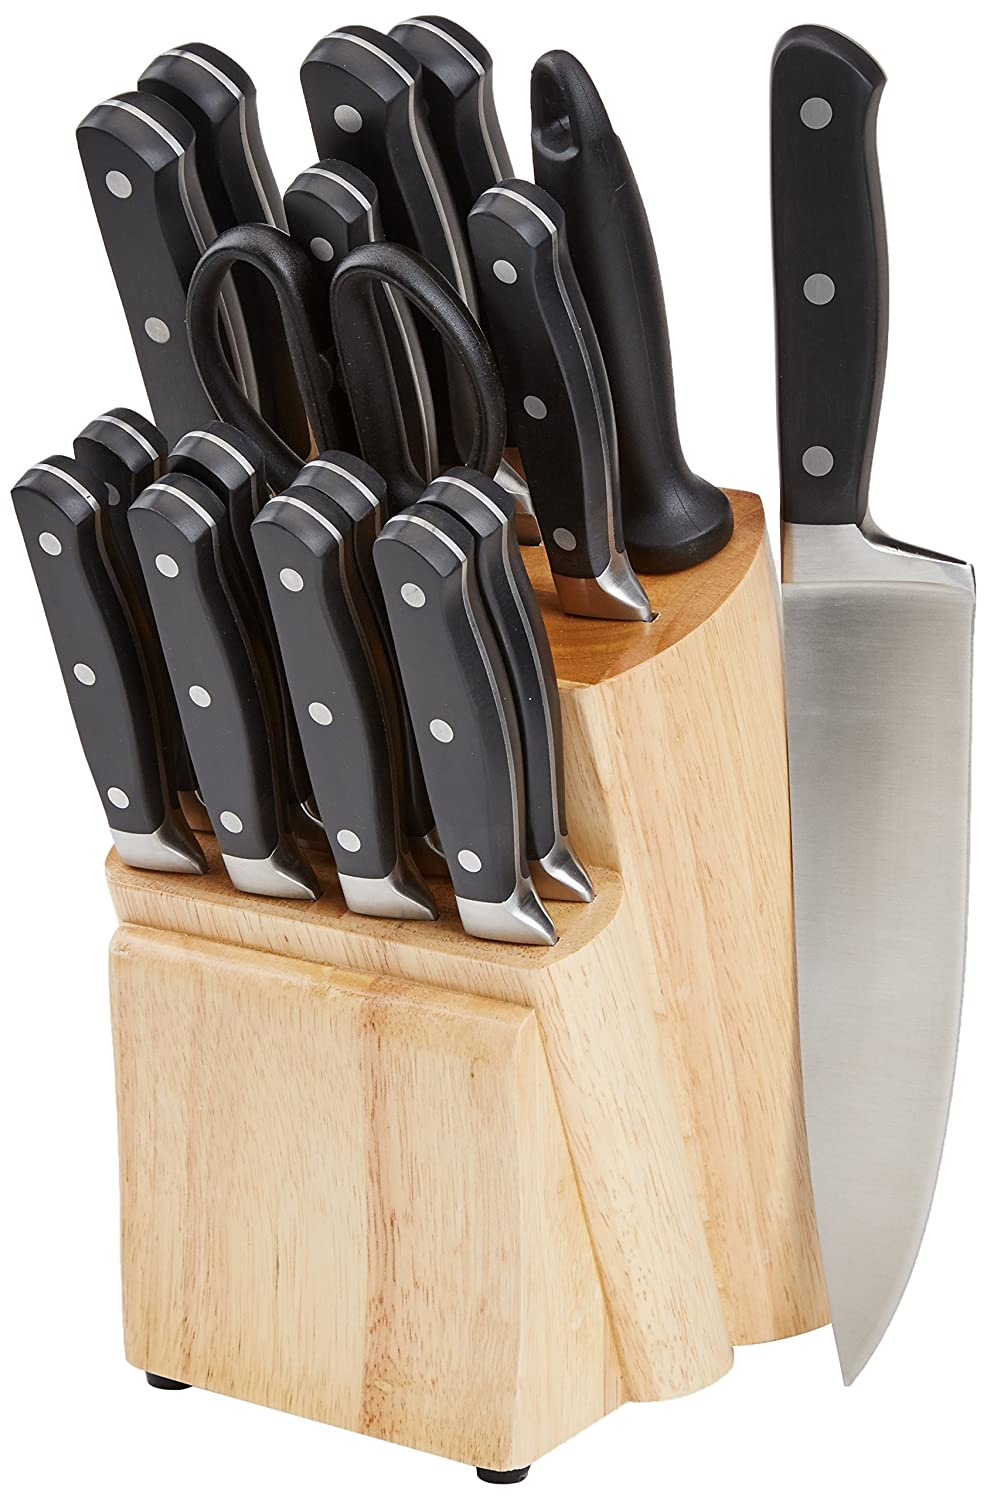 AmazonBasics Premium 18-Piece Kitchen Knife Block Set